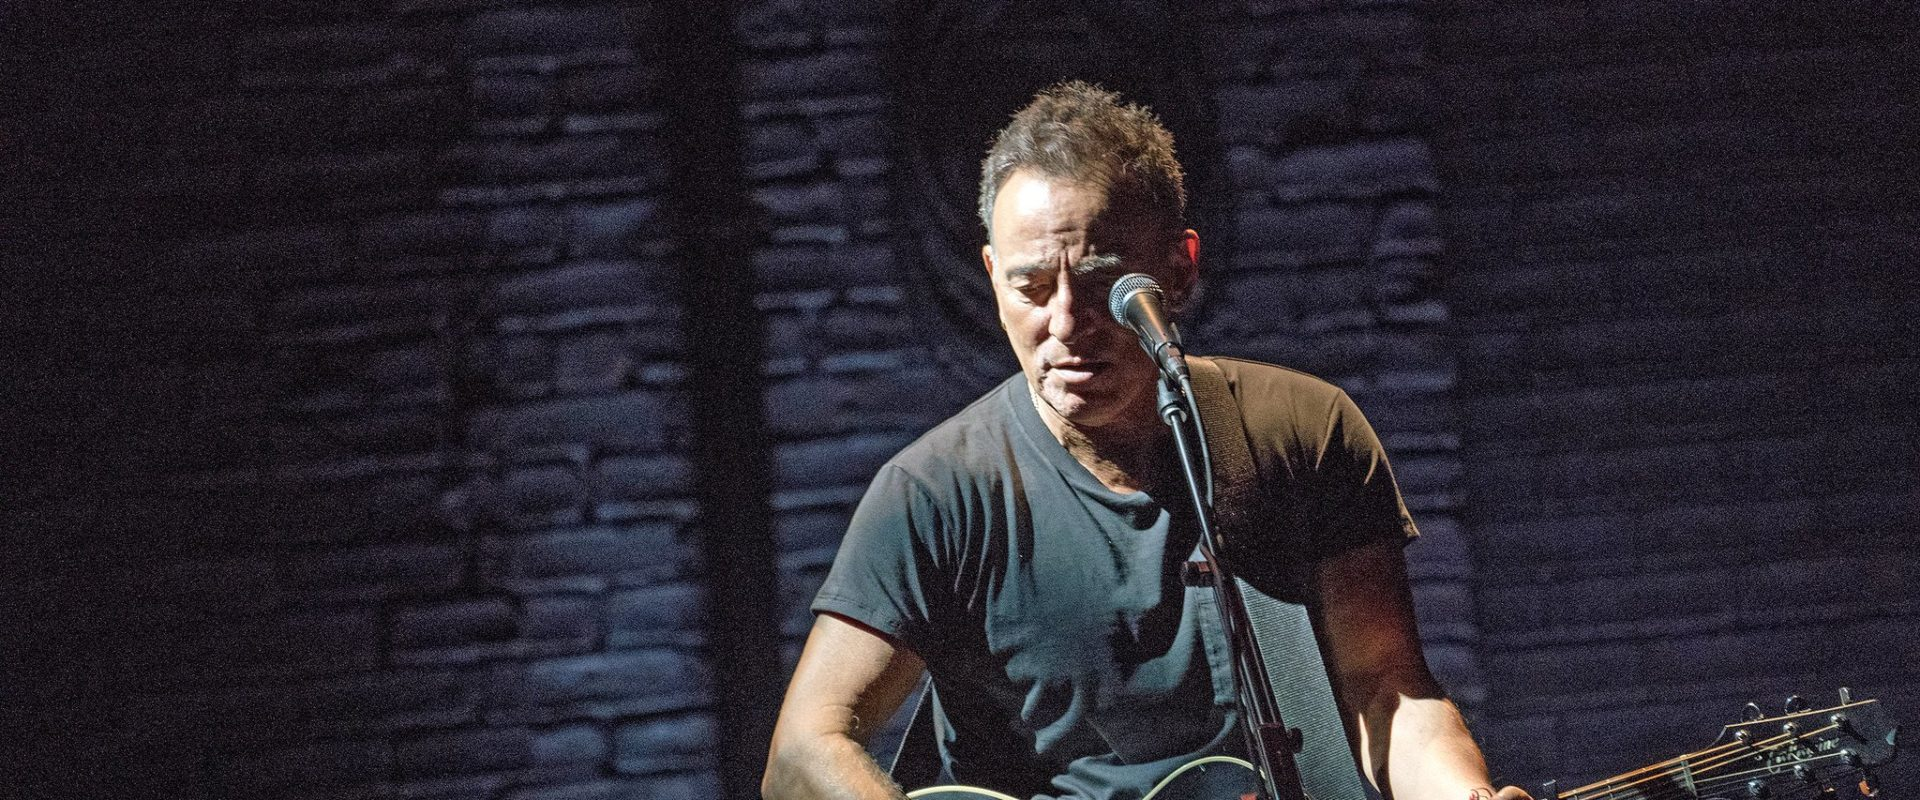 Permalink to: SPRINGSTEEN ON BROADWAY – Setlist y descargas